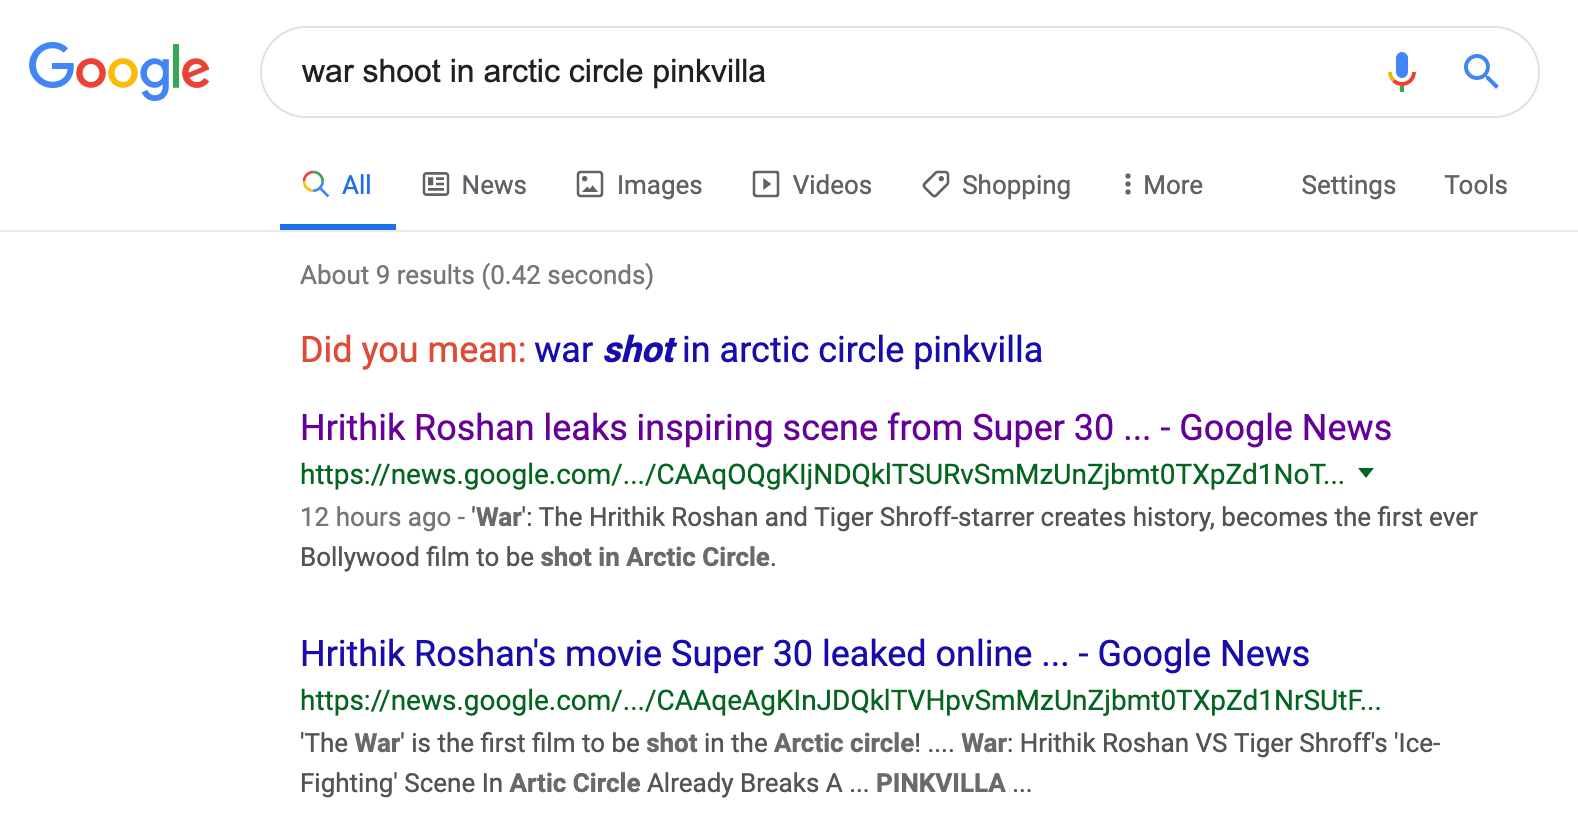 Google Indexing & Ranking Google News Search Results